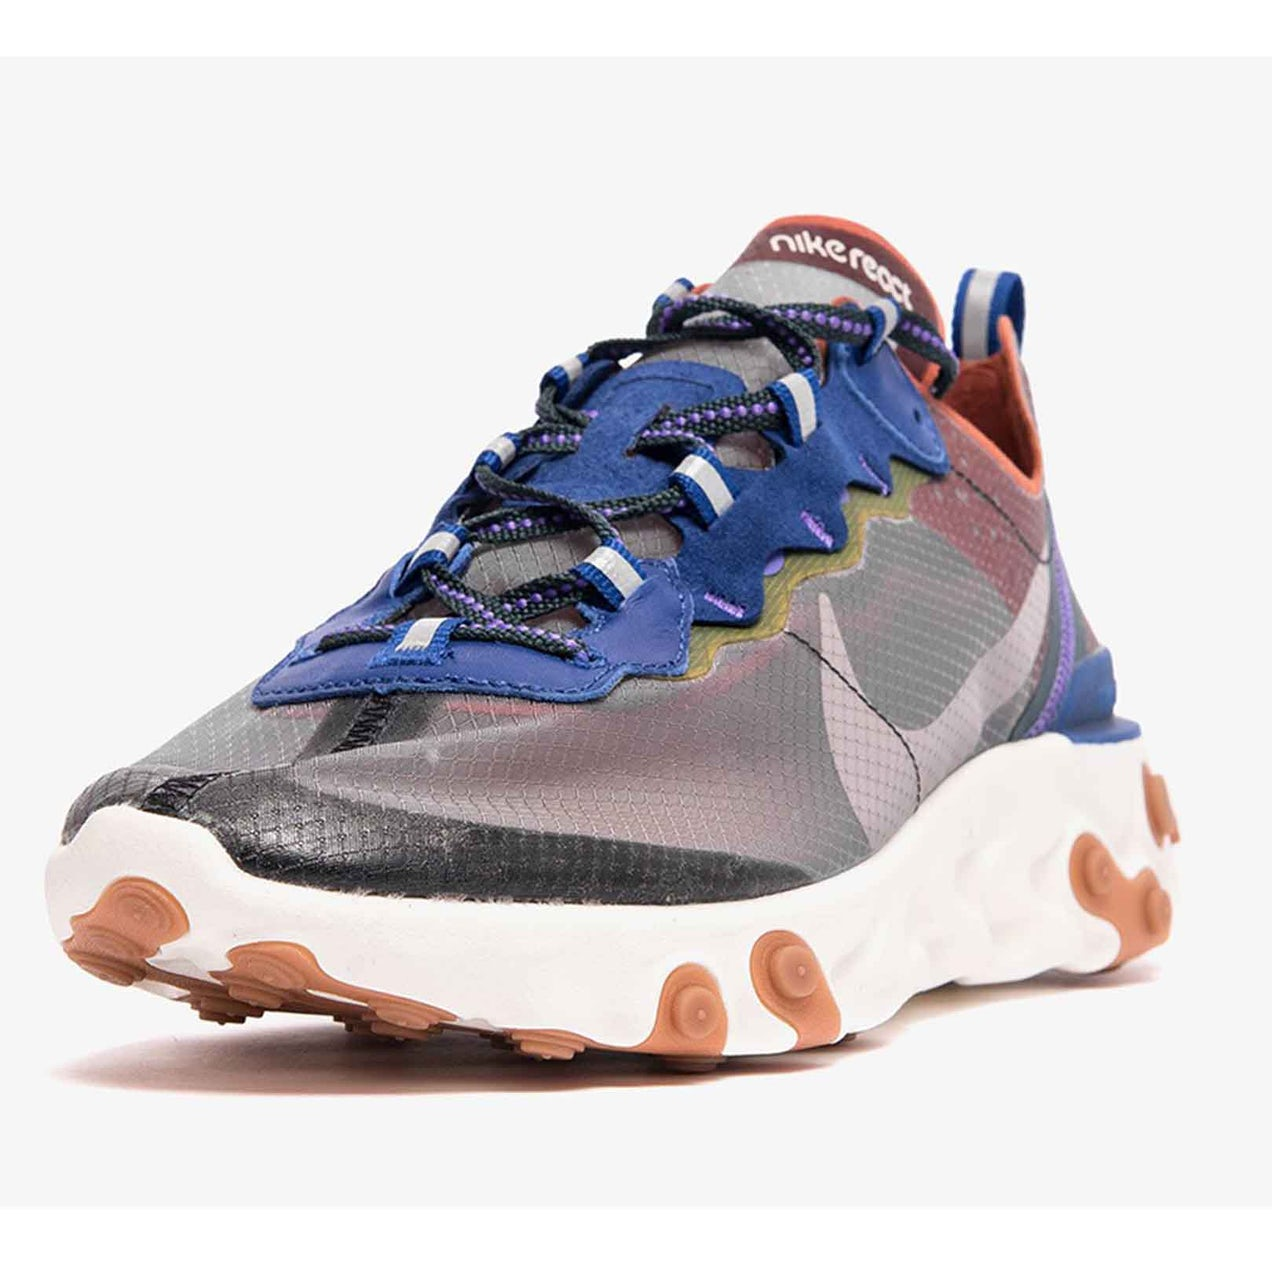 reputable site 8f195 8bc11 Nike React Element 87